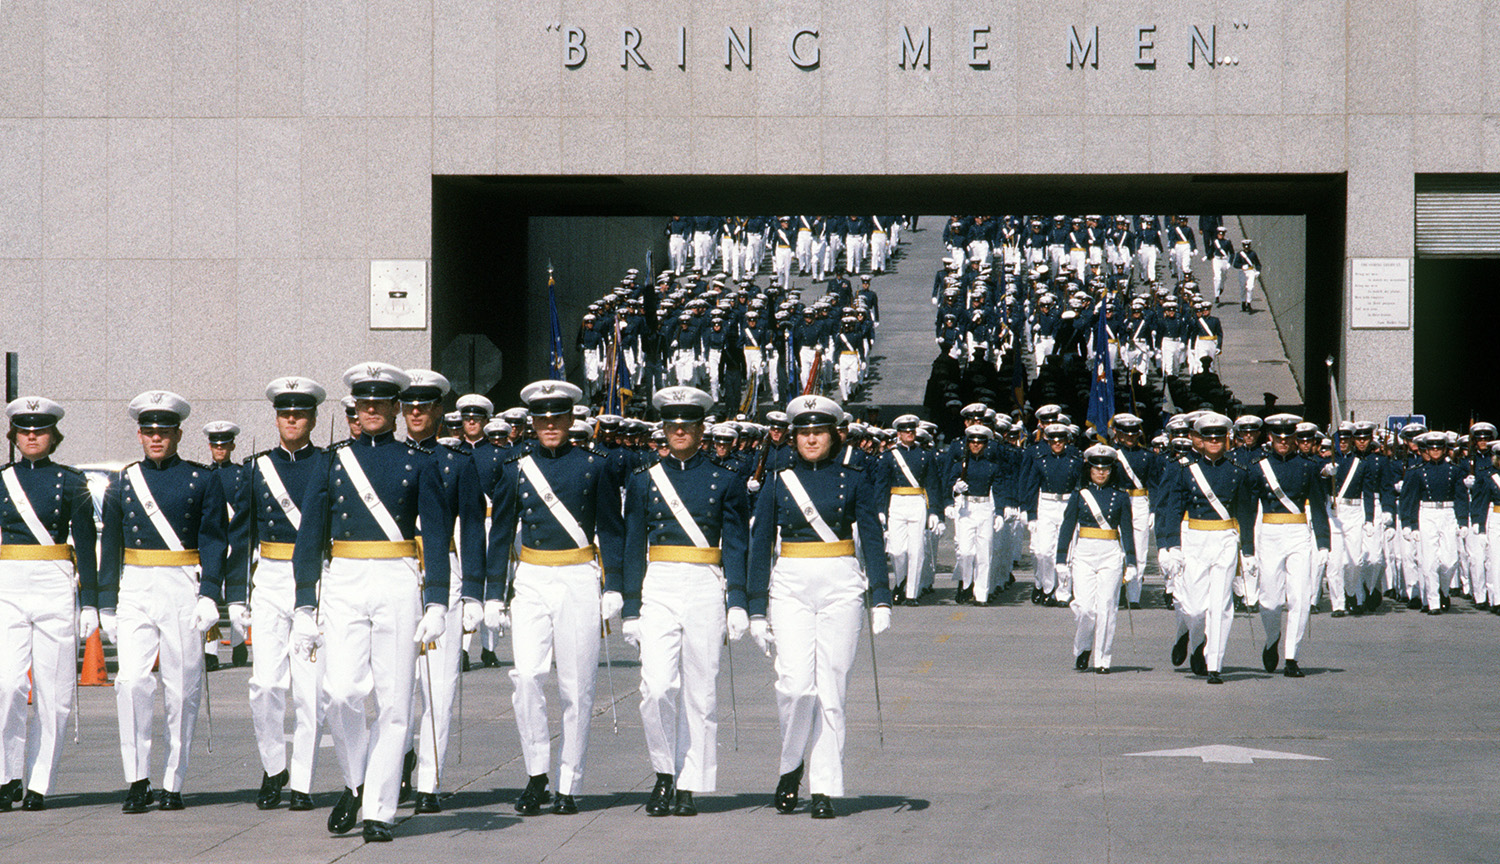 Color image of mostly white, largely male-presenting Air Force cadets in dress uniform parading in formation through an open passageway. Text over the passageway reads: Bring Me Men.